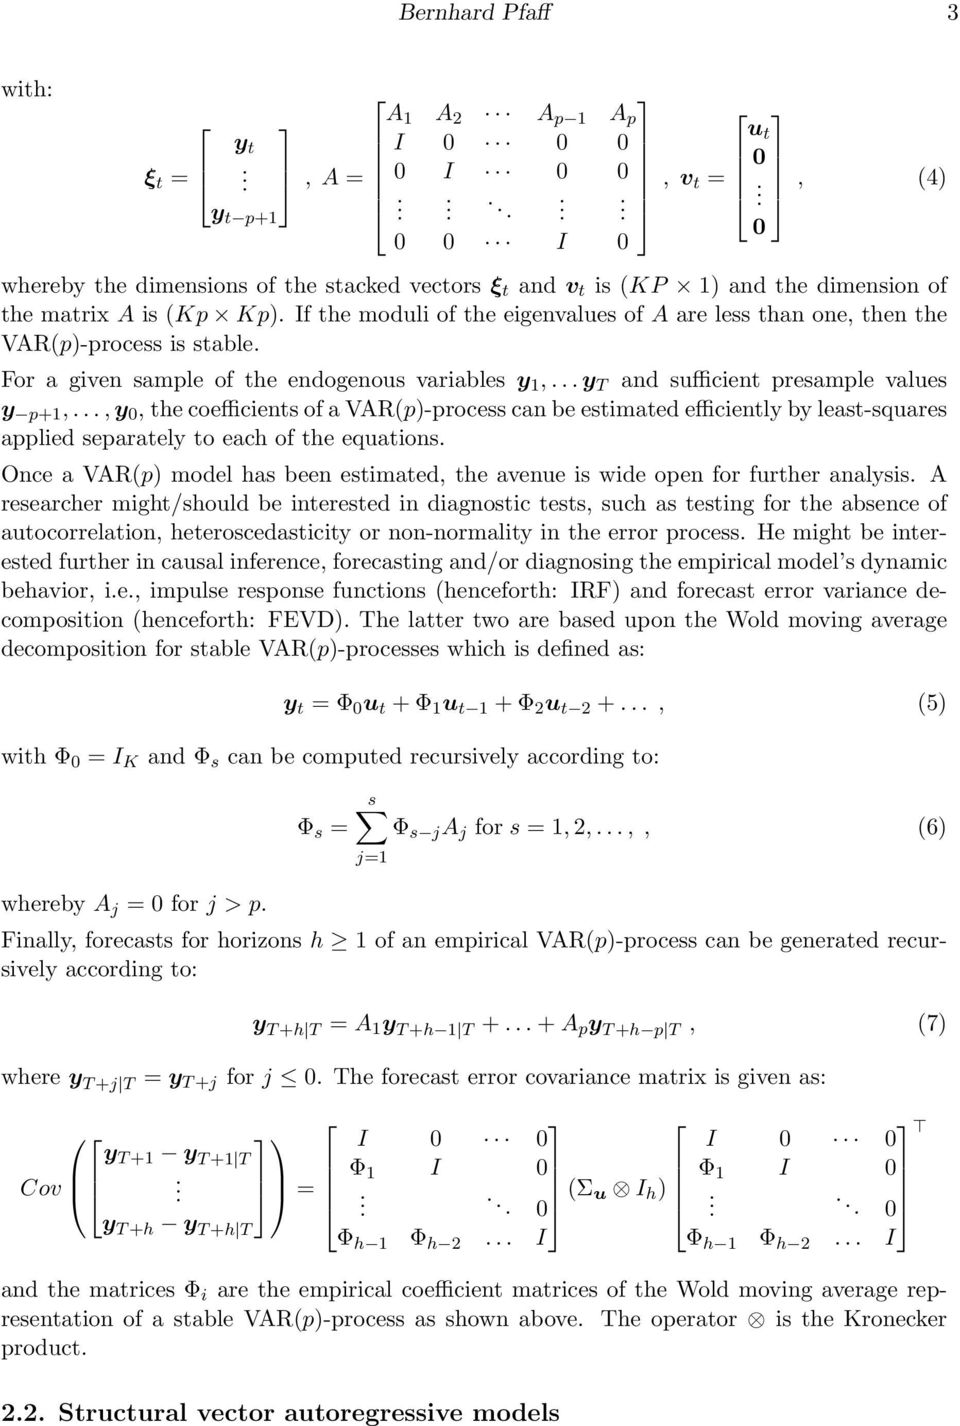 If the moduli of the eigenvalues of A are less than one, then the VAR(p)-process is stable. For a given sample of the endogenous variables y 1,... y T and sufficient presample values y p+1,.